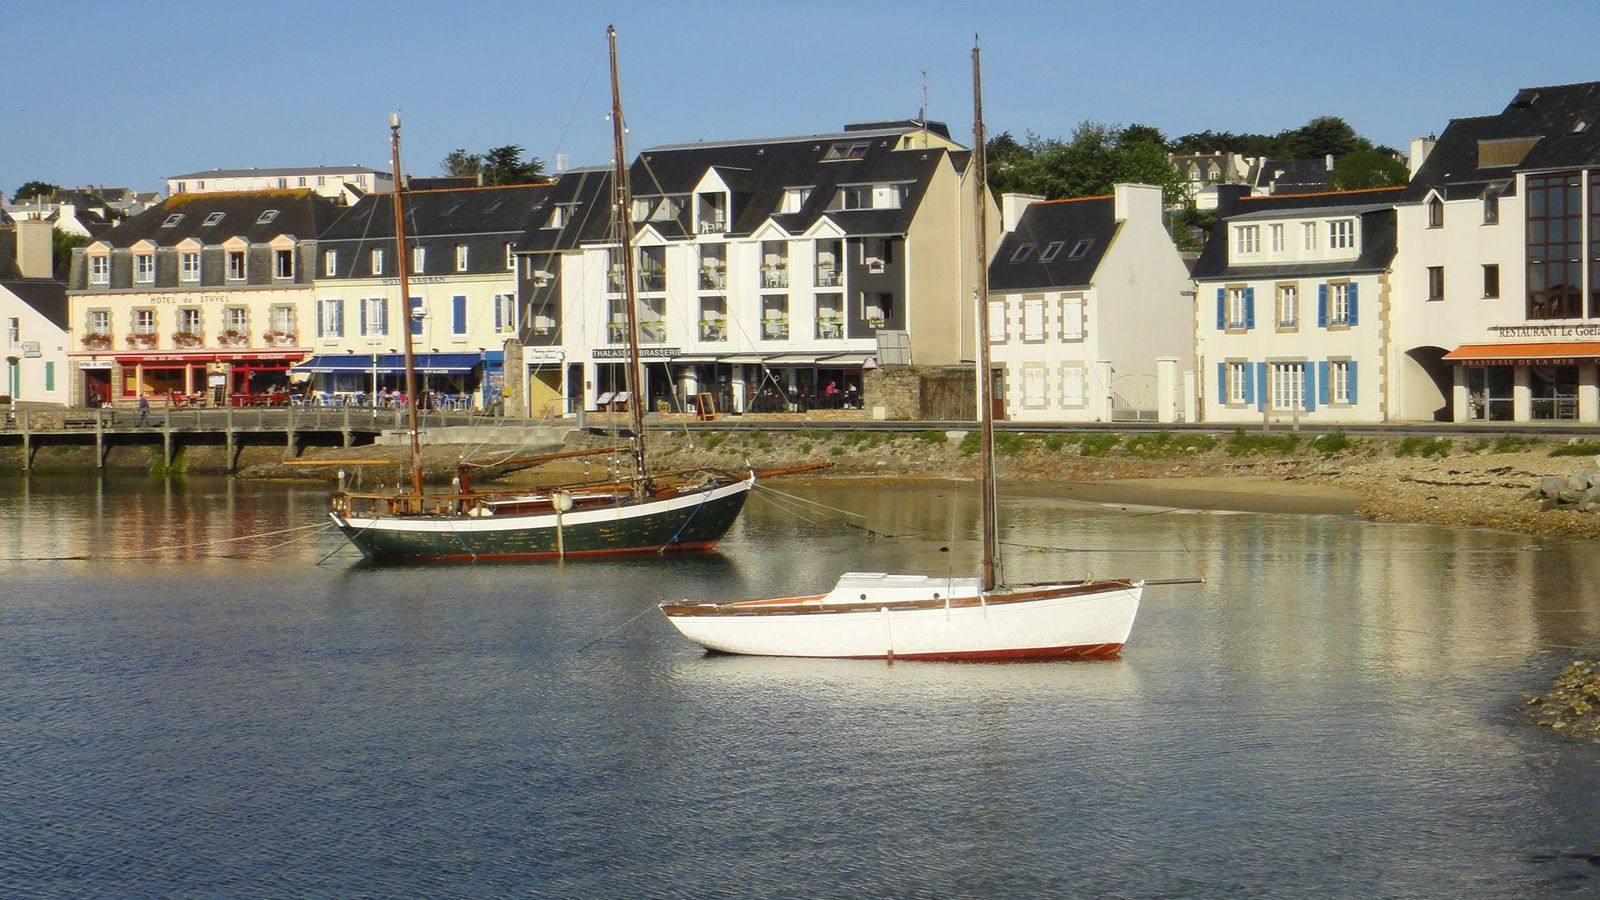 Week-end CDCK29 : Camaret - Pen Hir - Camaret (1/2)